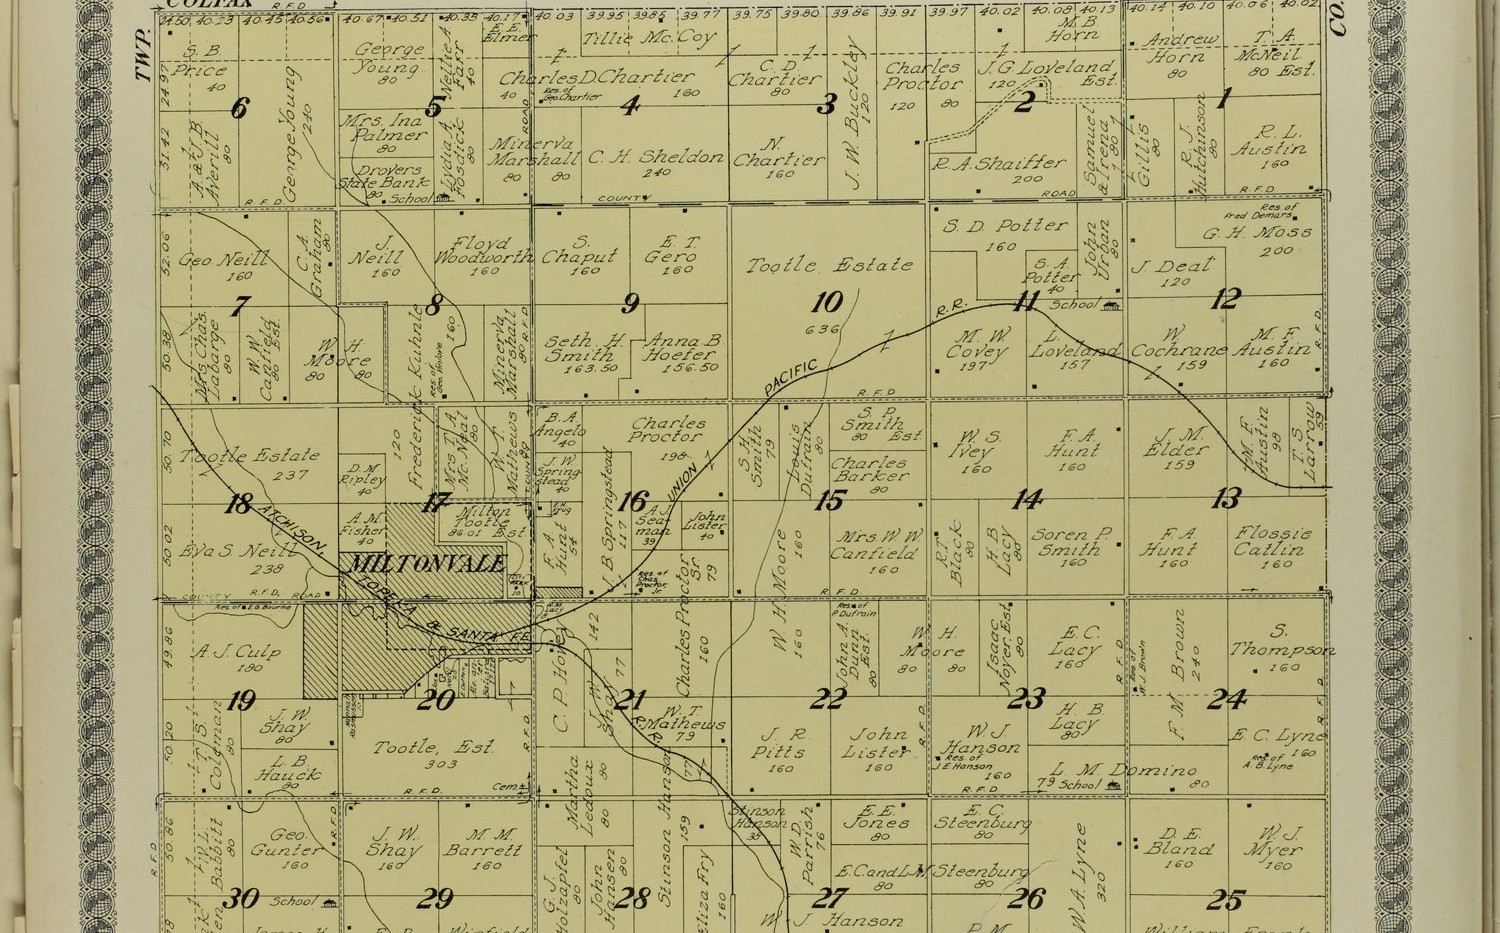 19: Starr Township